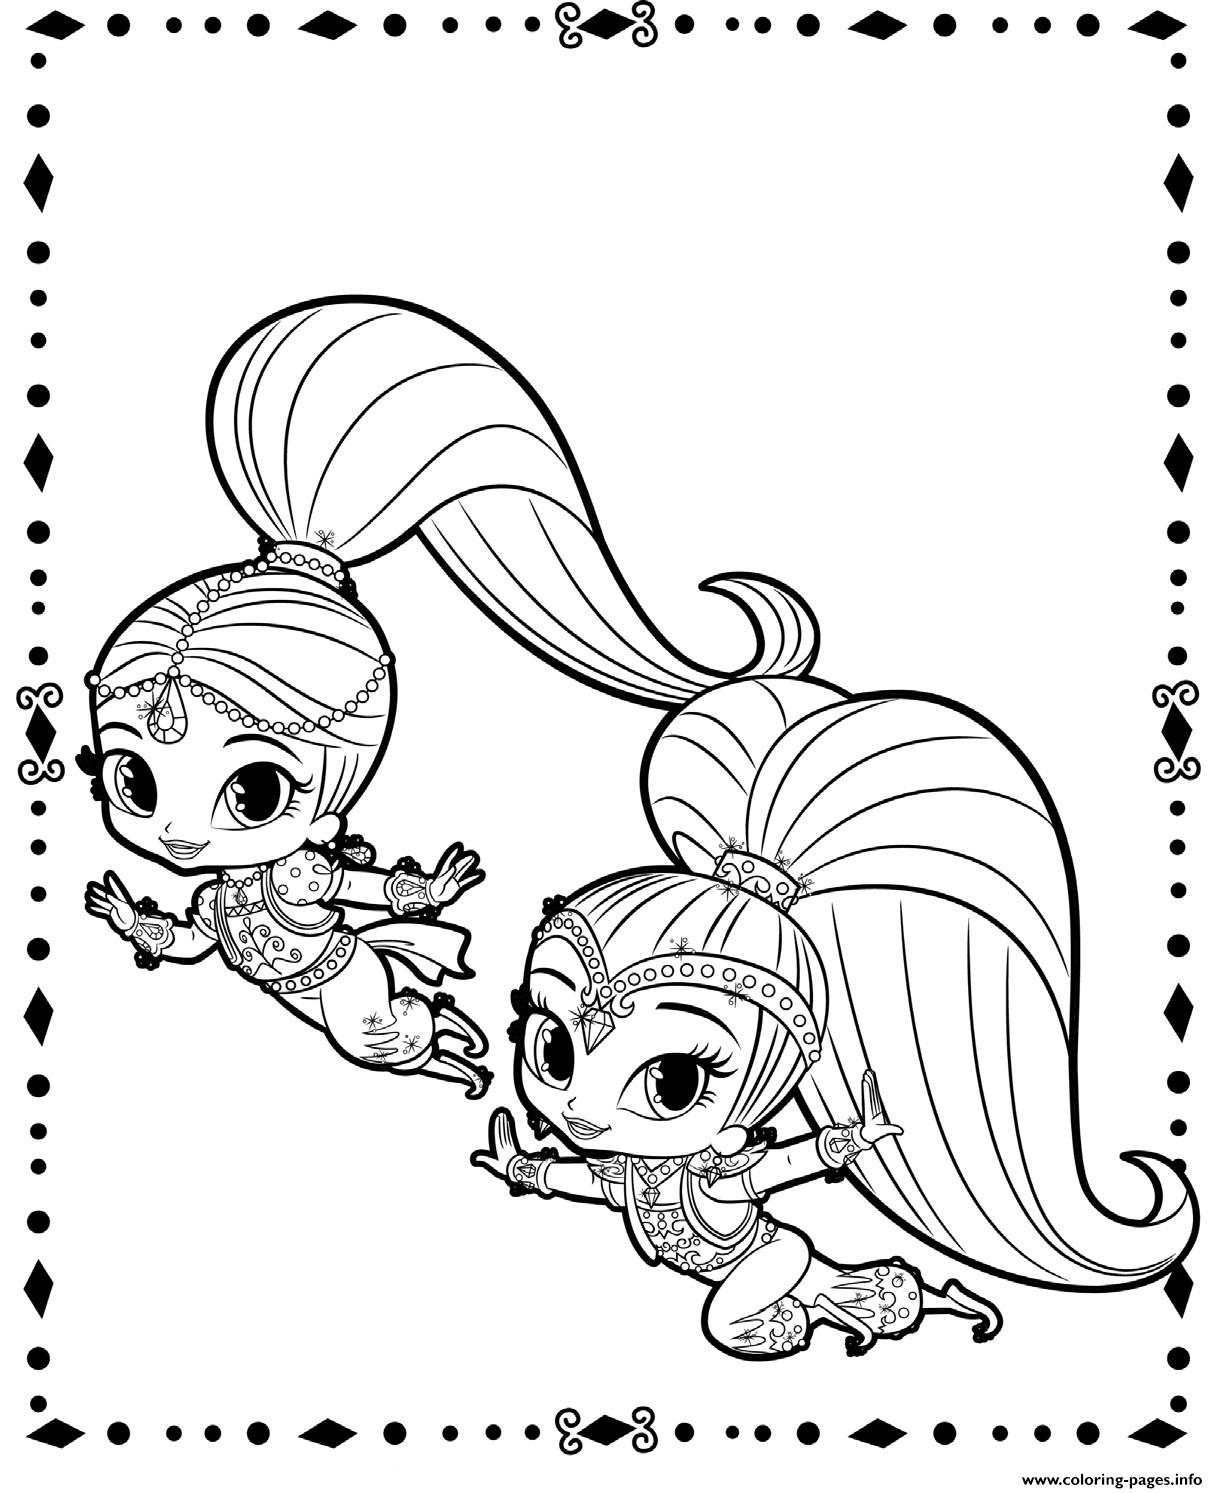 fluing genies shimmer and shine coloring pages printable